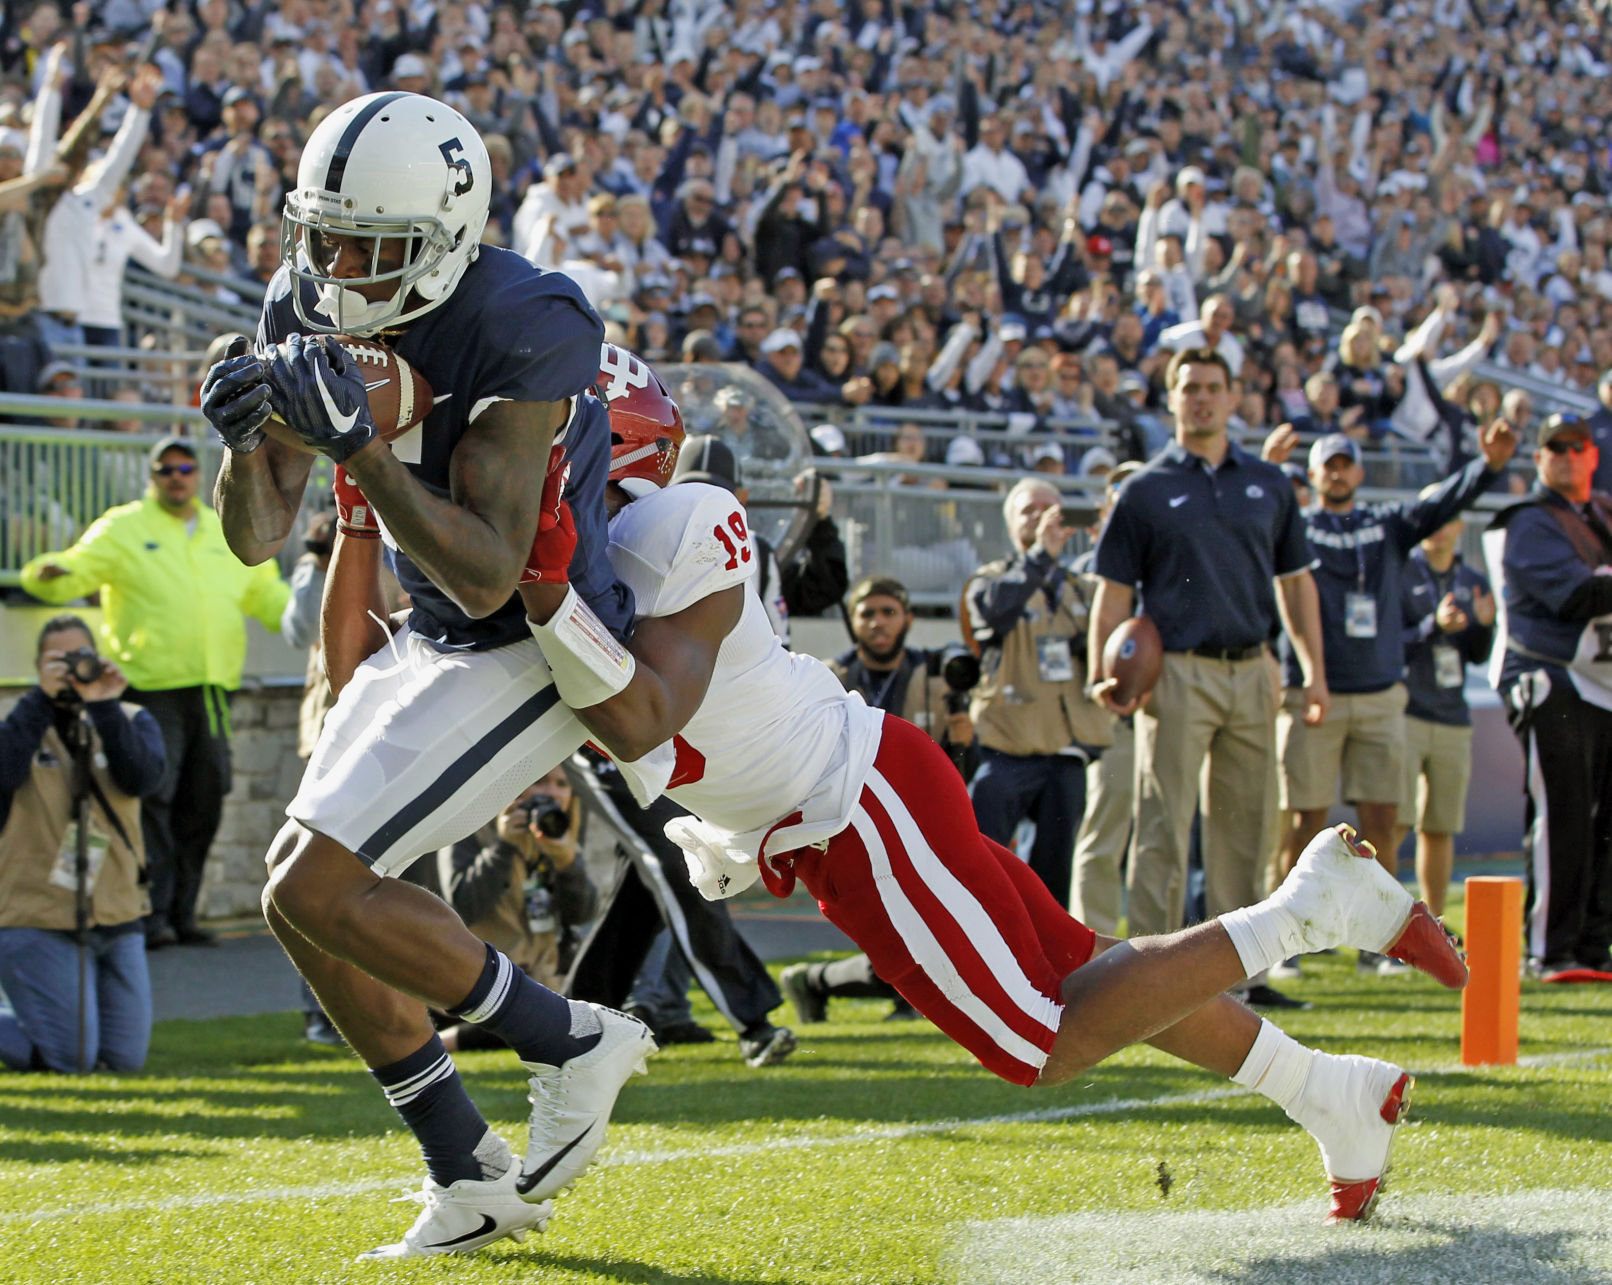 Saquon Barkley fuels fast start for Penn State, but IN hanging around